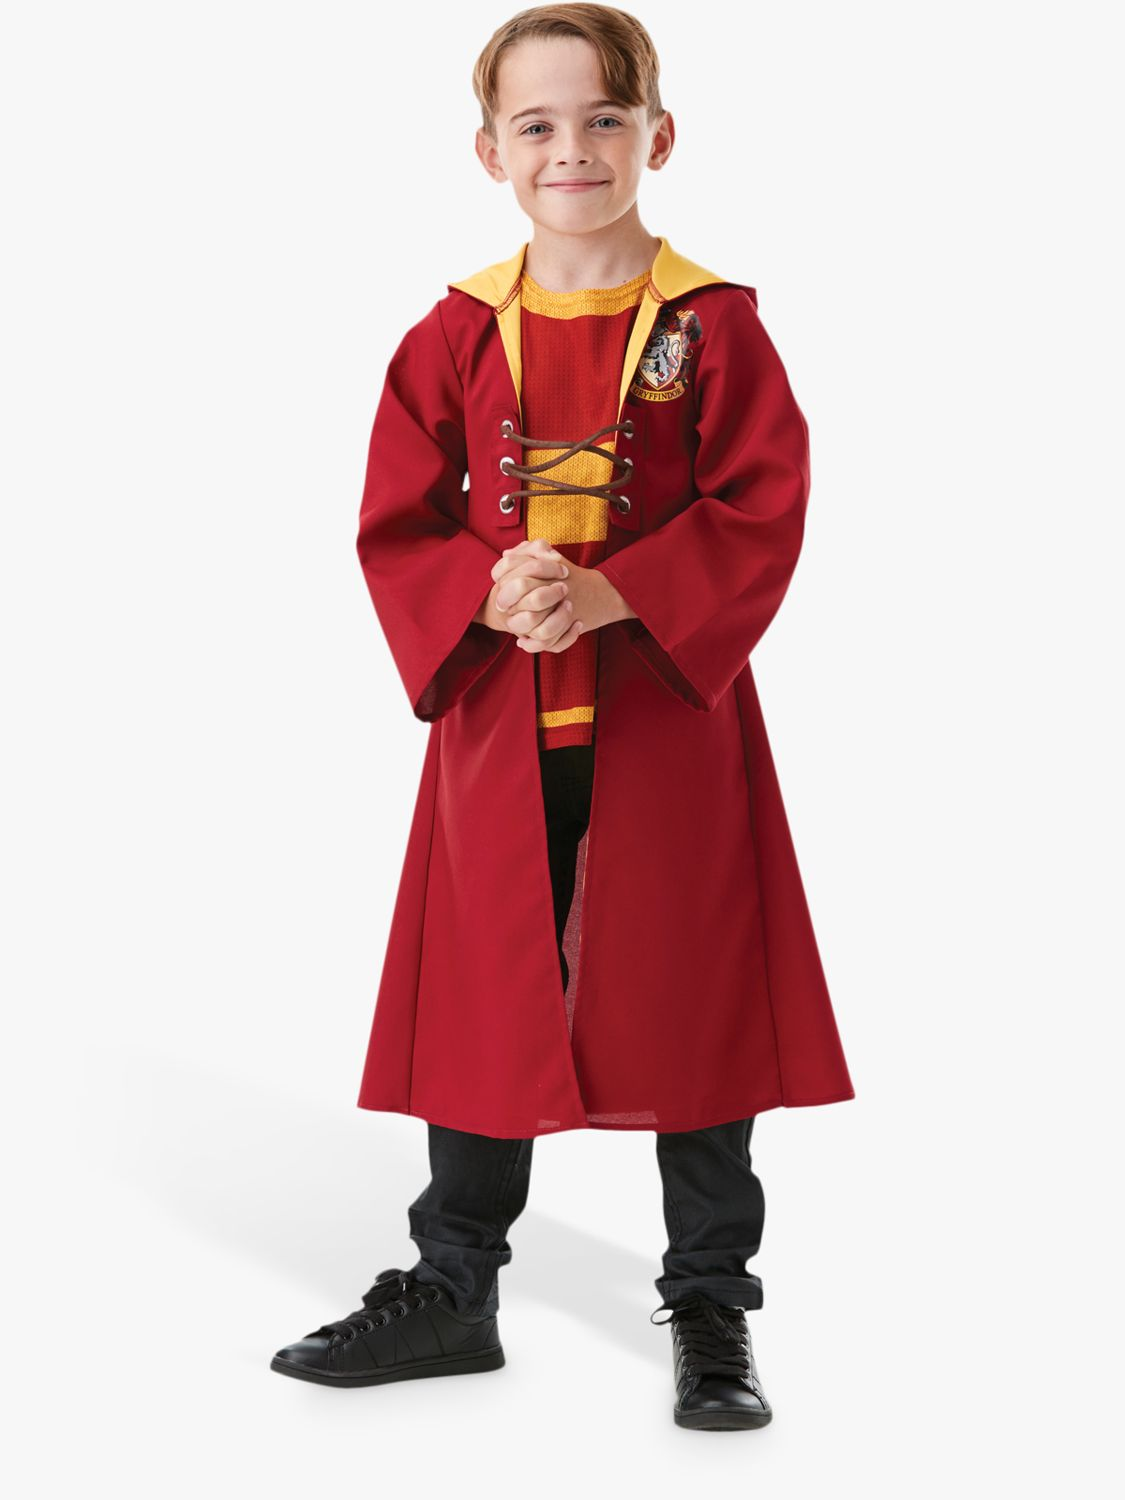 Large Harry Potter Quidditch Robe Toys Games Costumes